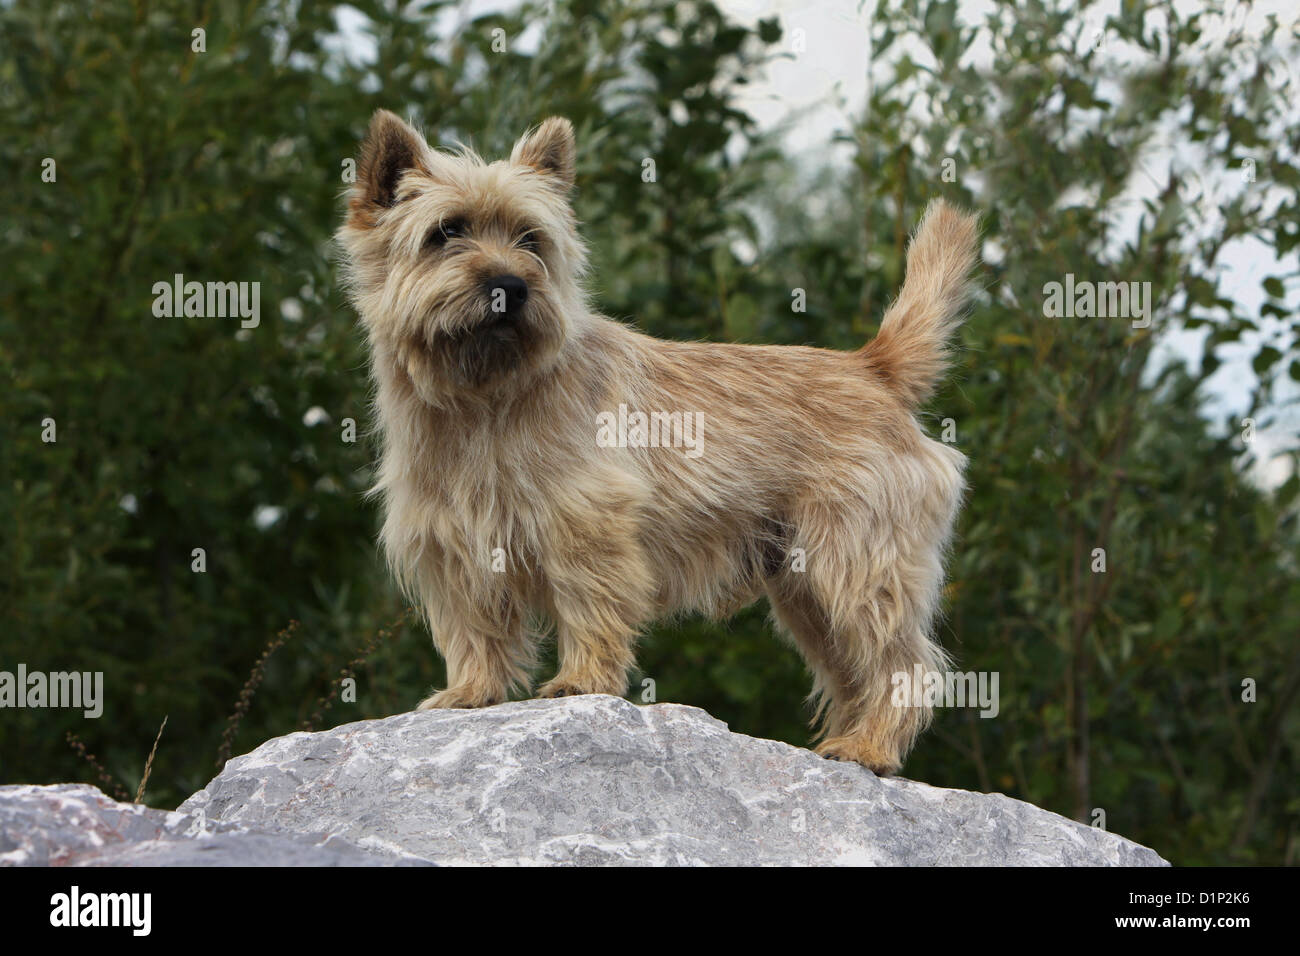 Dog Cairn Terrier adult wheaten standing on a rock Stock